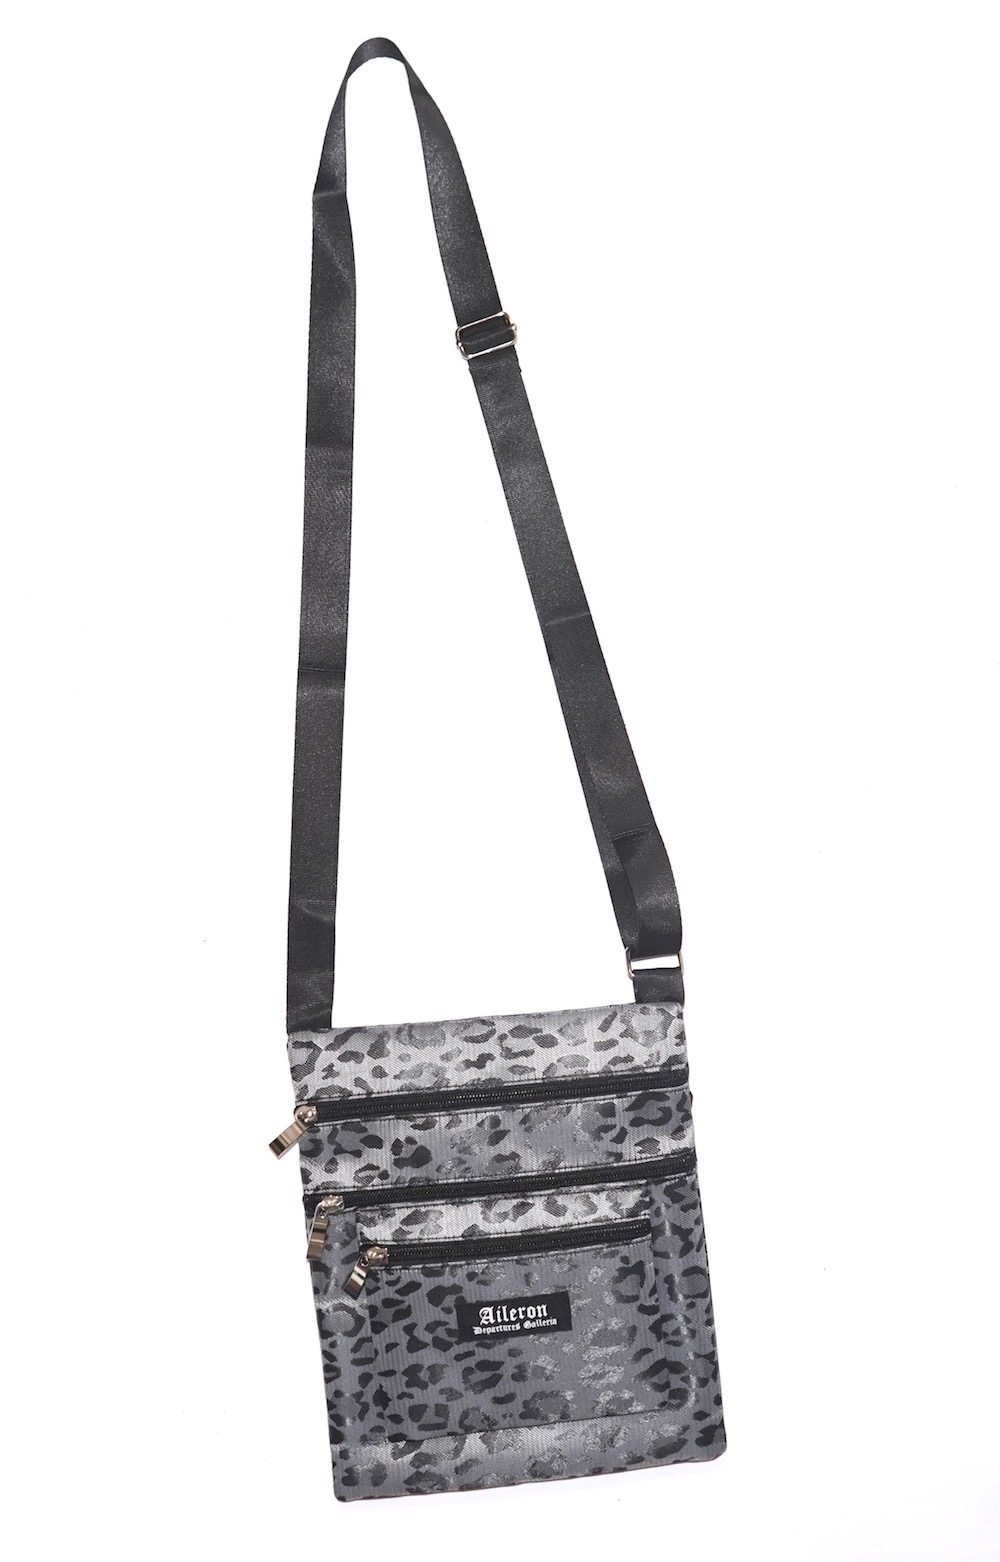 ADG LEOPARD SACOCHE BAG (black)